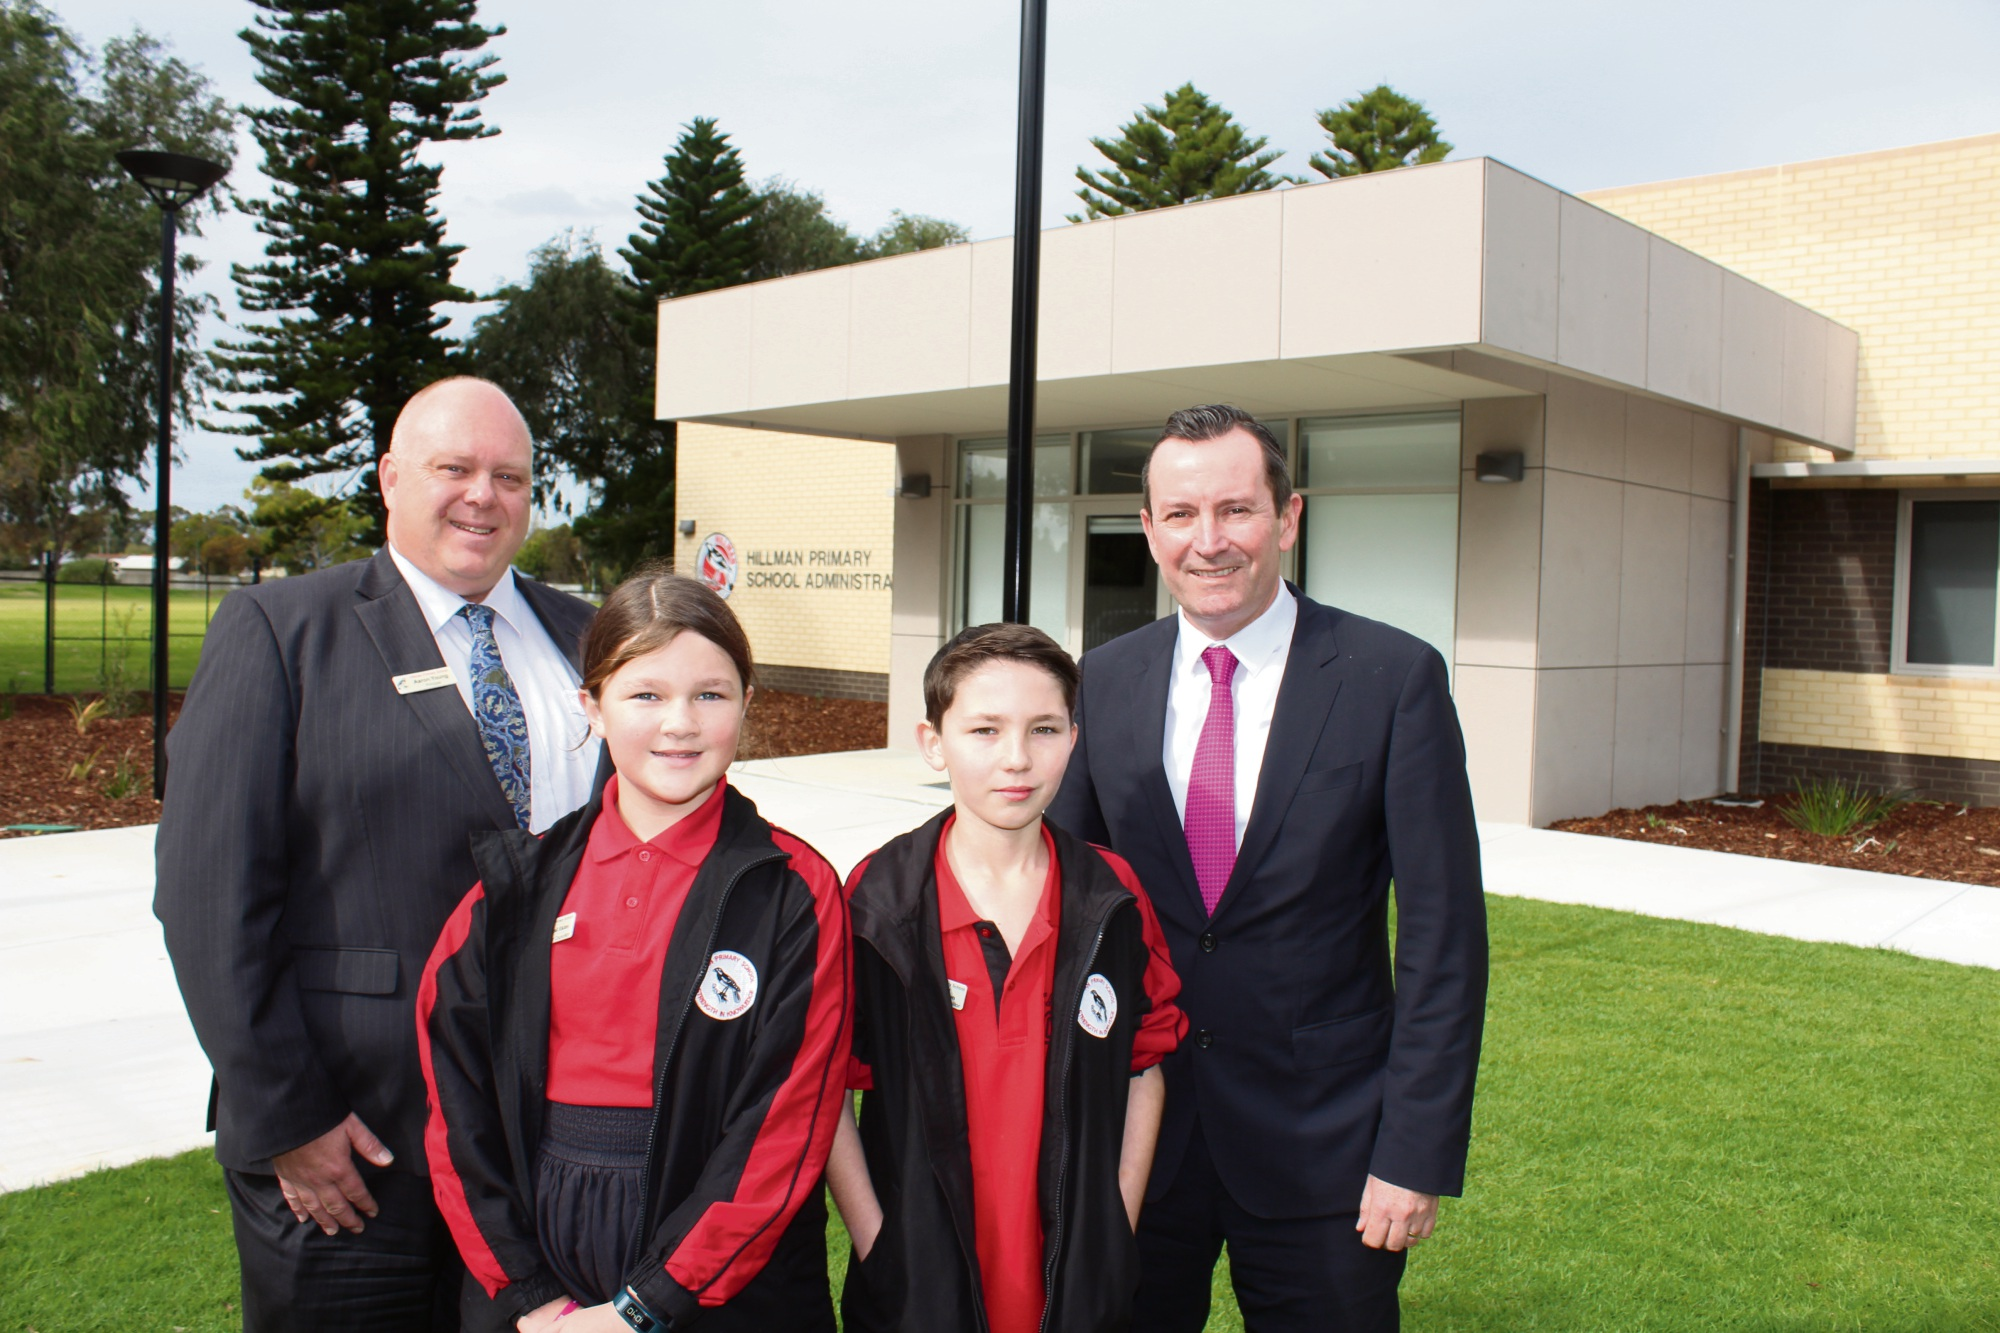 Hillman Primary School principal Aaron Young, year six students Abigail Ekins and Daniel Richardson, who are on the Rockingham Junior Council, and Premier Mark McGowan out the front of the new administration building this morning.